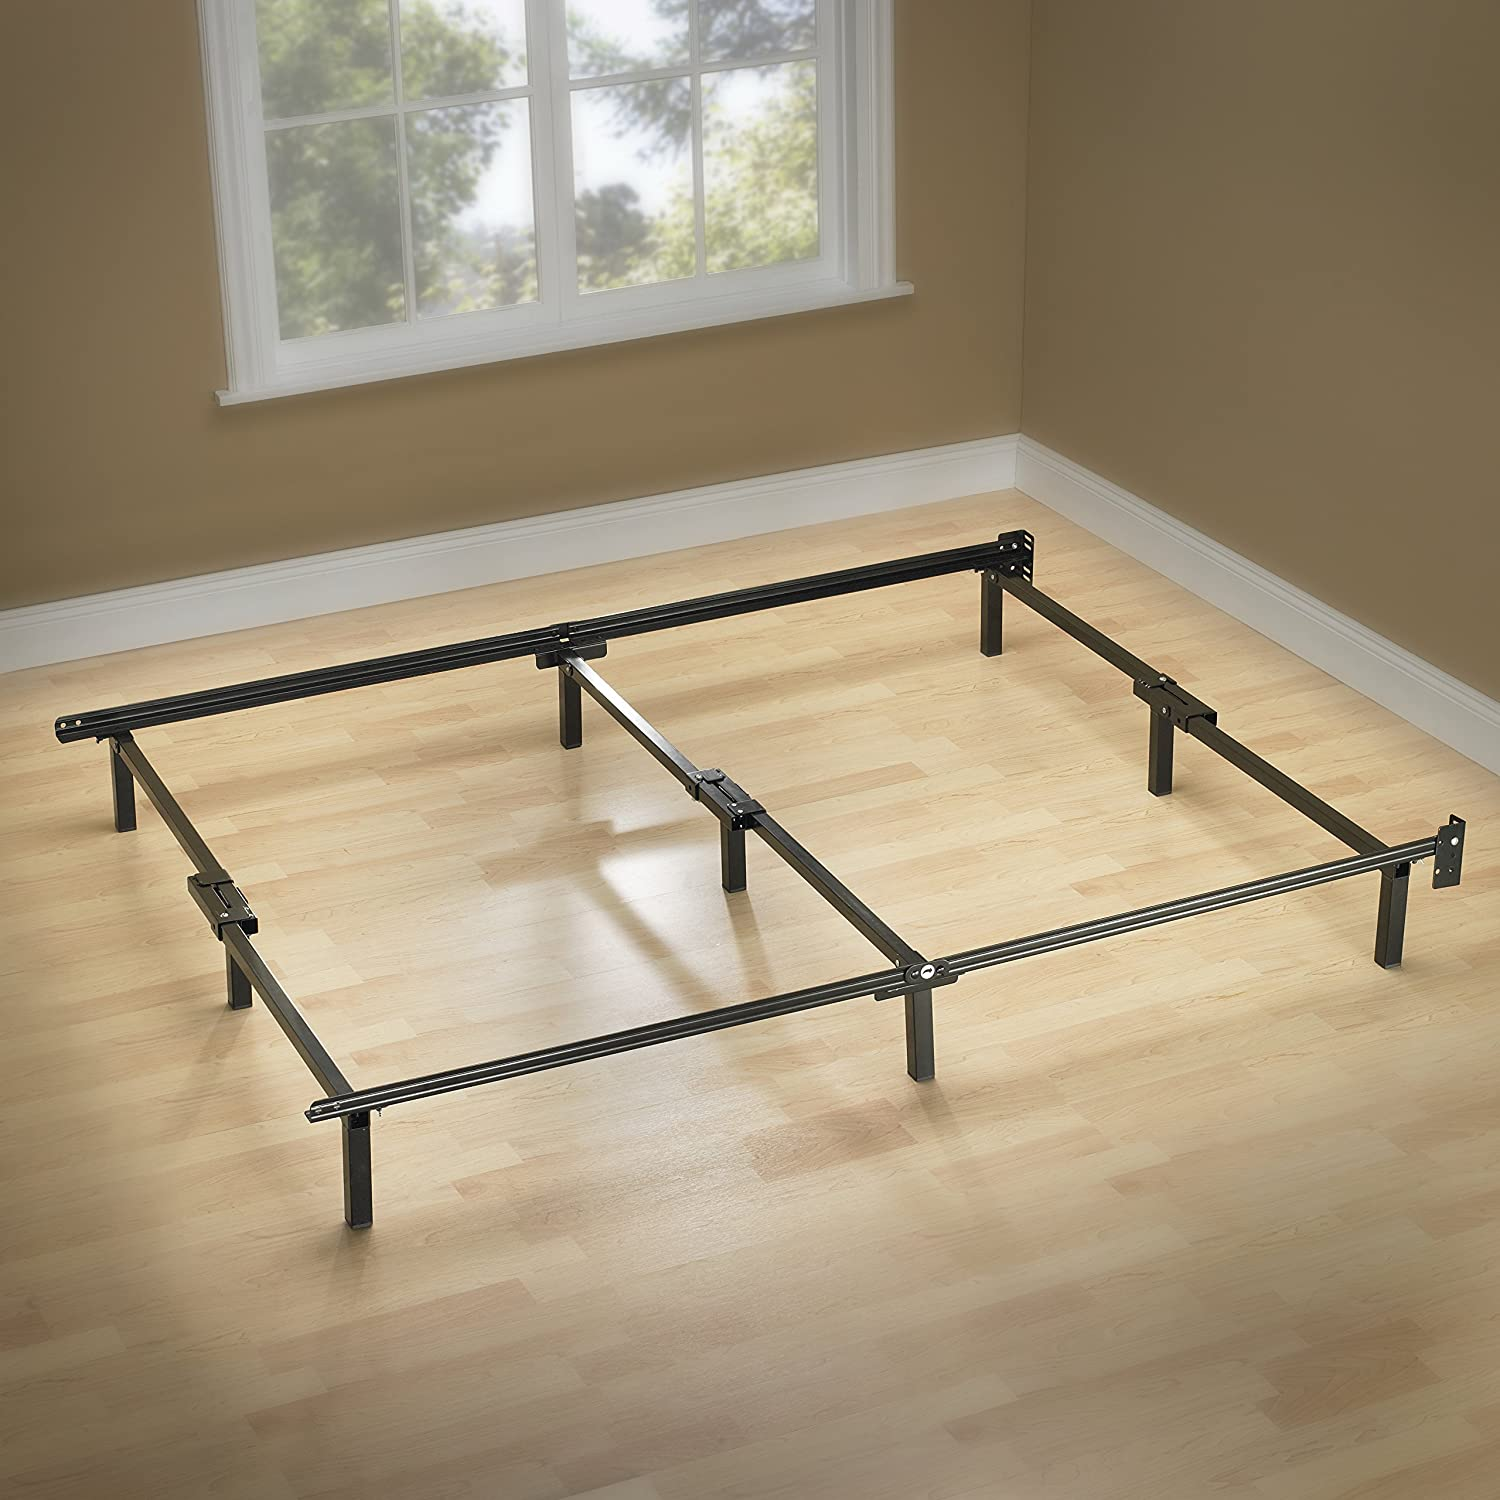 Amazon Zinus Compack 9 Leg Support Bed Frame For Box Spring Mattress Set Queen Kitchen Dining